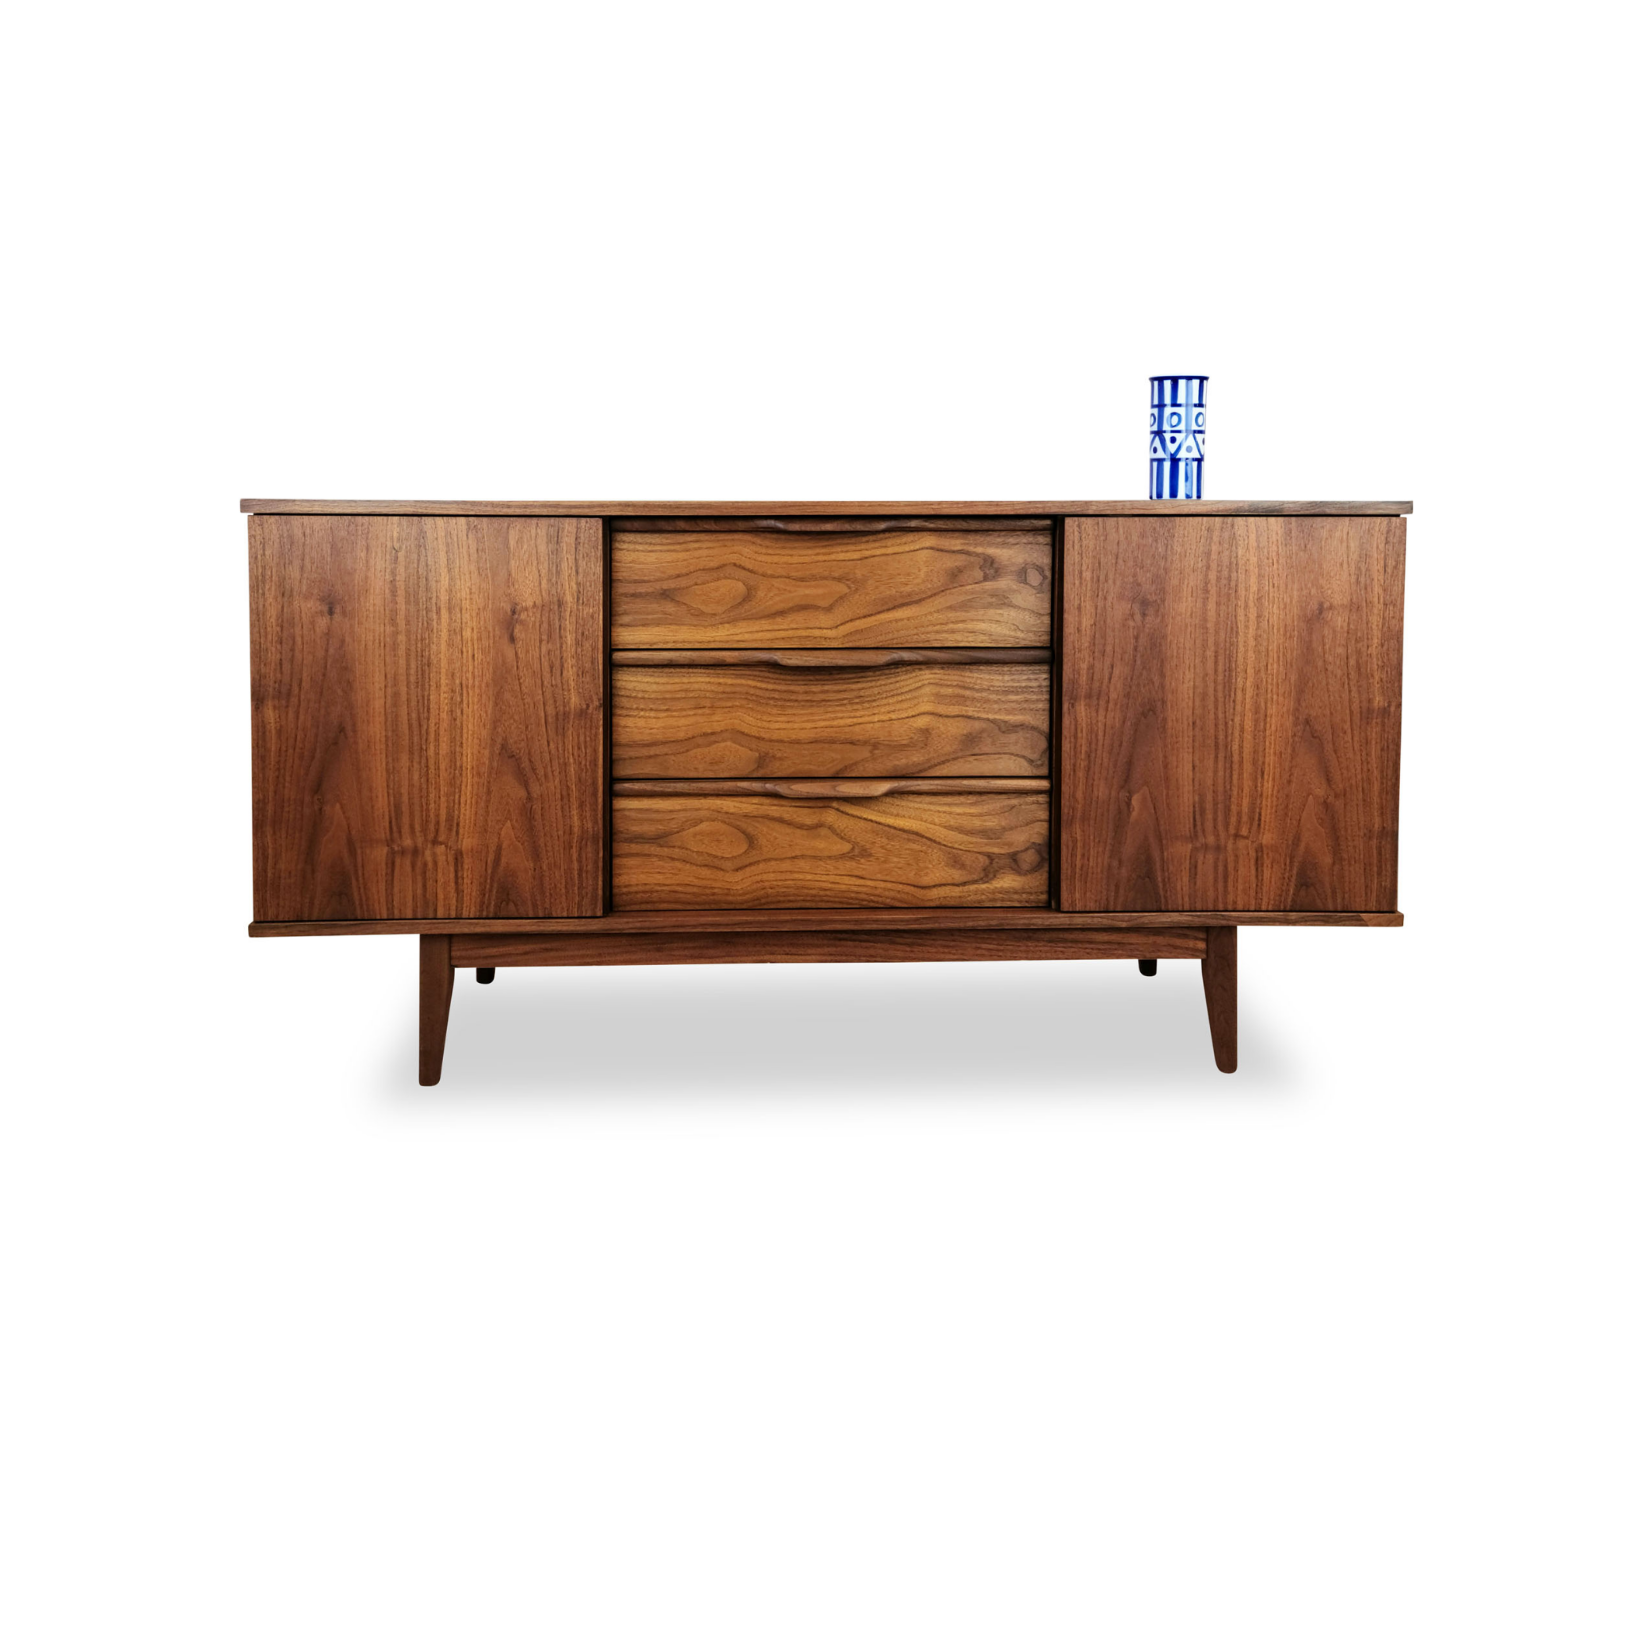 Walnut Sideboard by Princeville